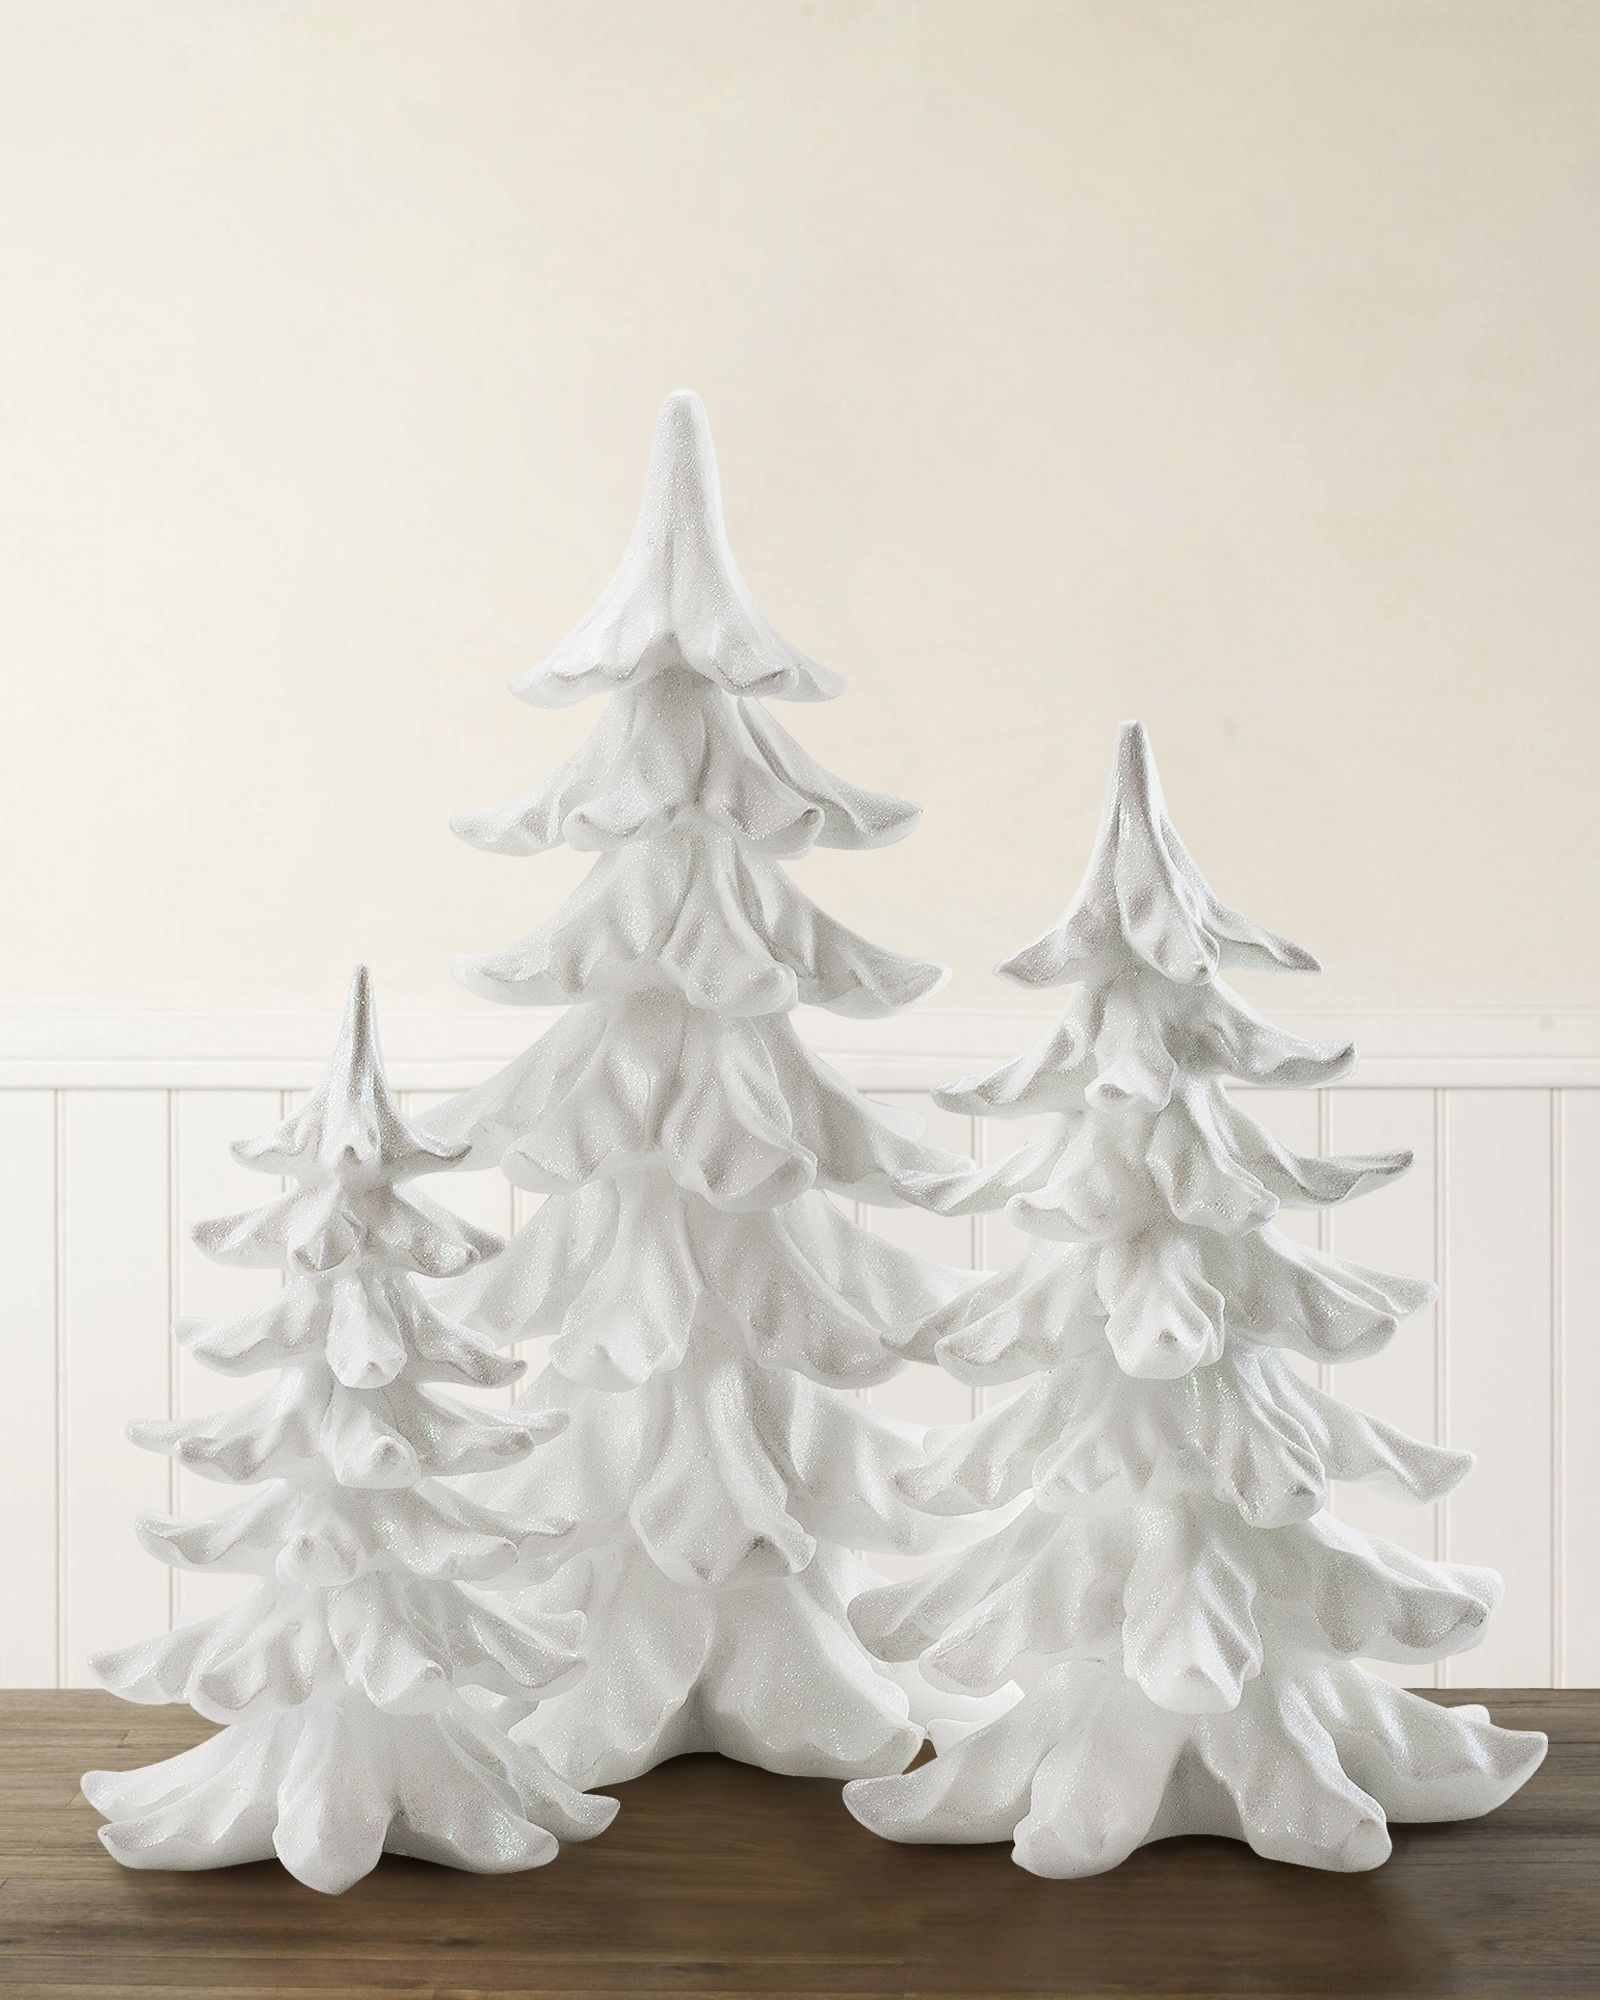 Showcasing a snowy white finish dusted with white glitter the White